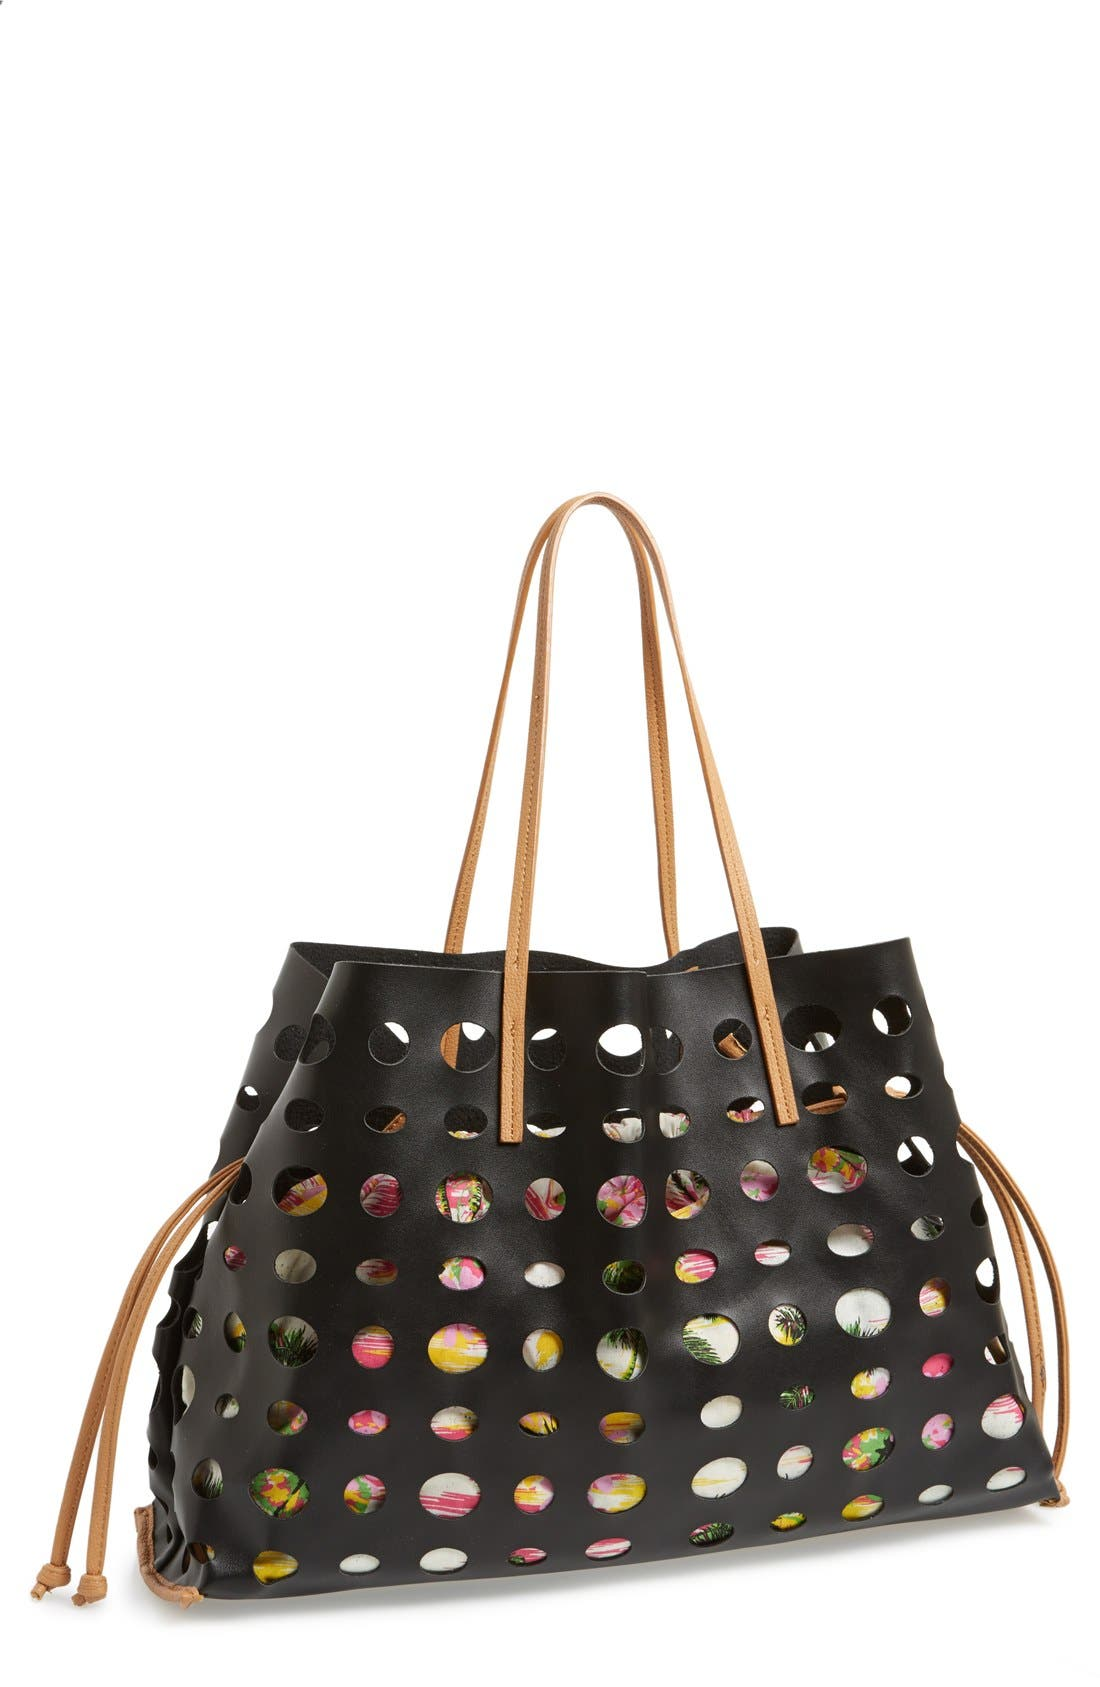 POVERTY FLATS BY RIAN 'Large' Perforated Faux Leather Tote, Main, color, 001